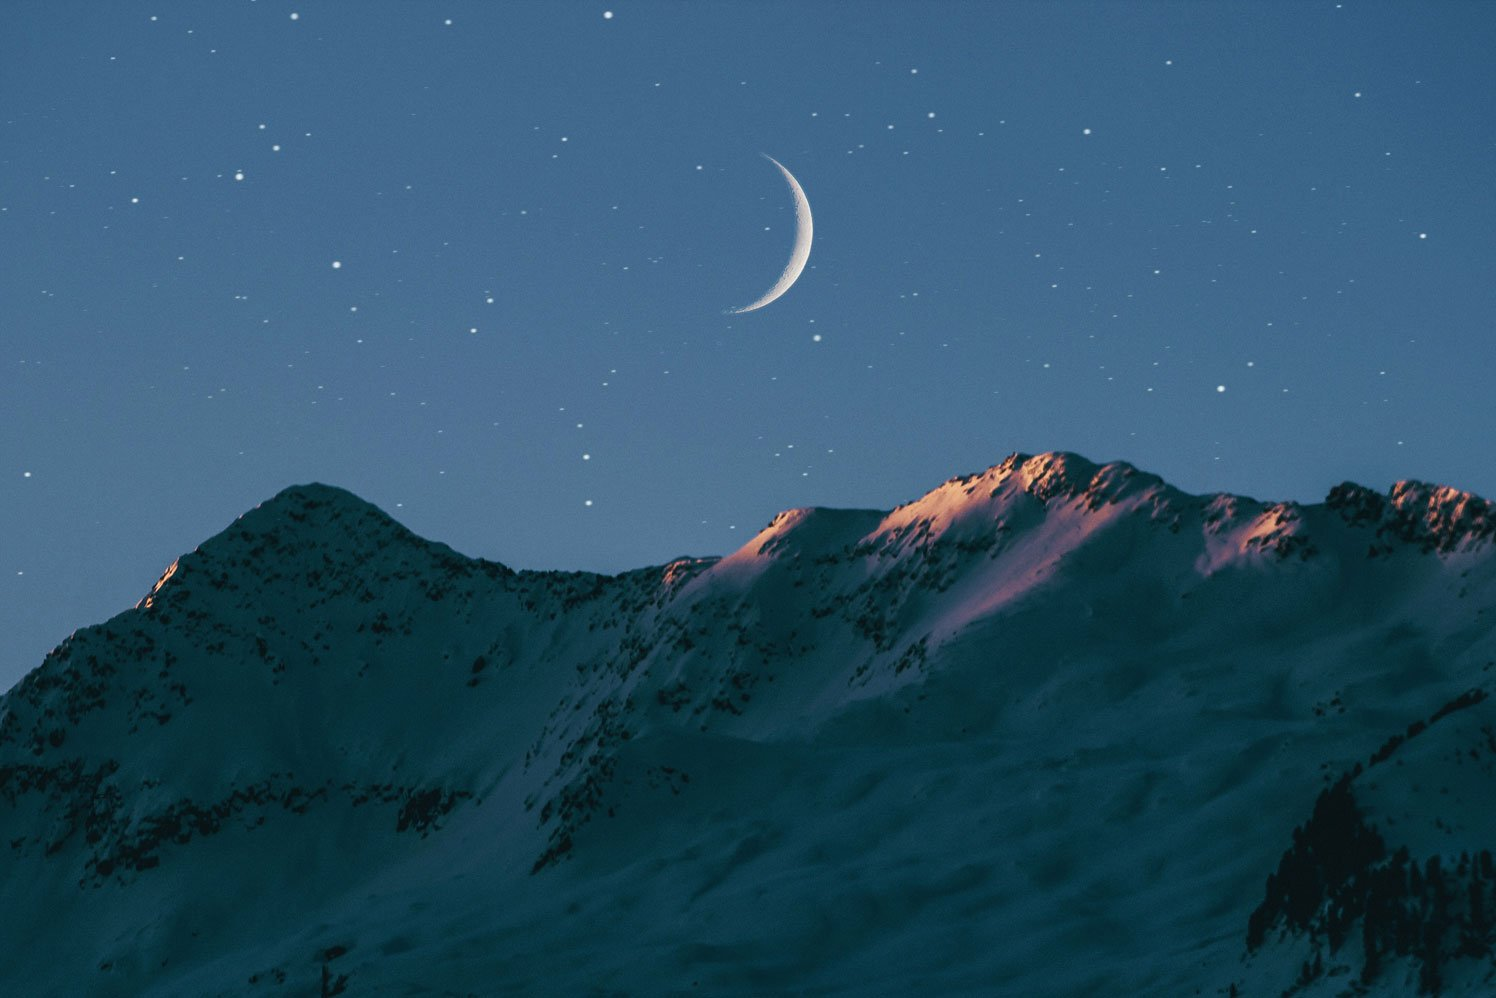 Moon with mountain